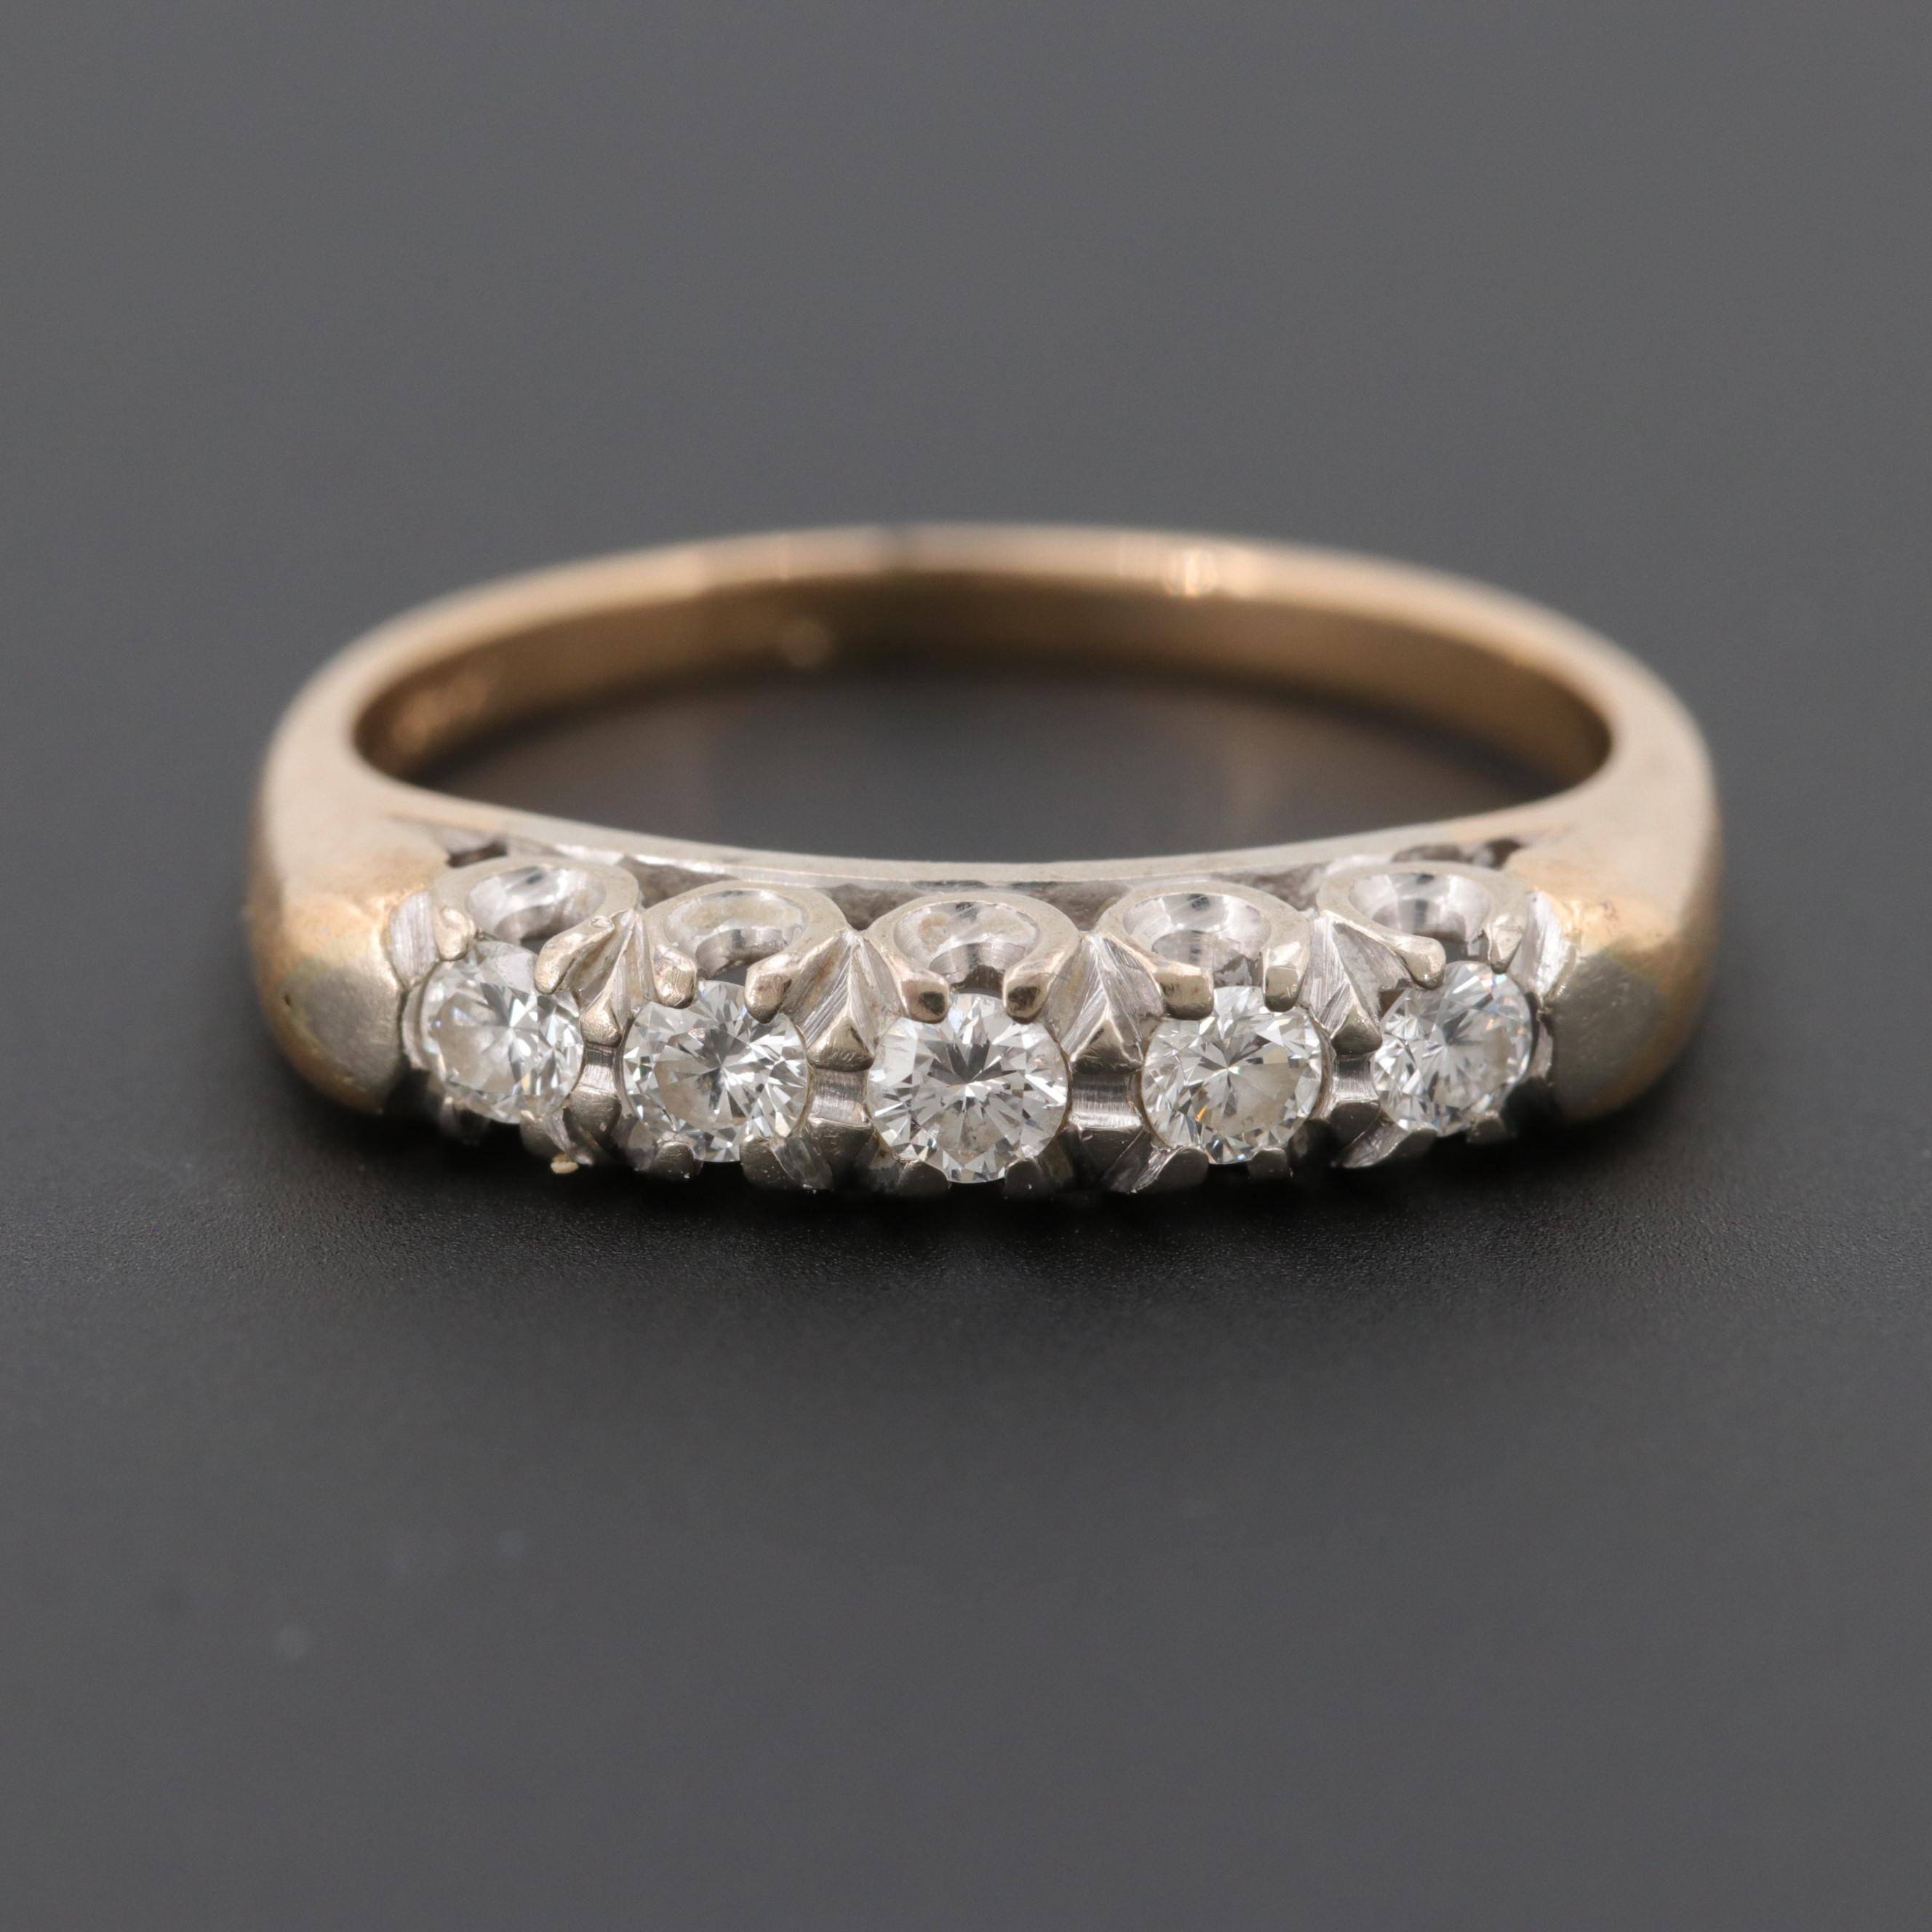 Vintage 14K Yellow Gold Diamond Ring With a 14K White Gold Setting